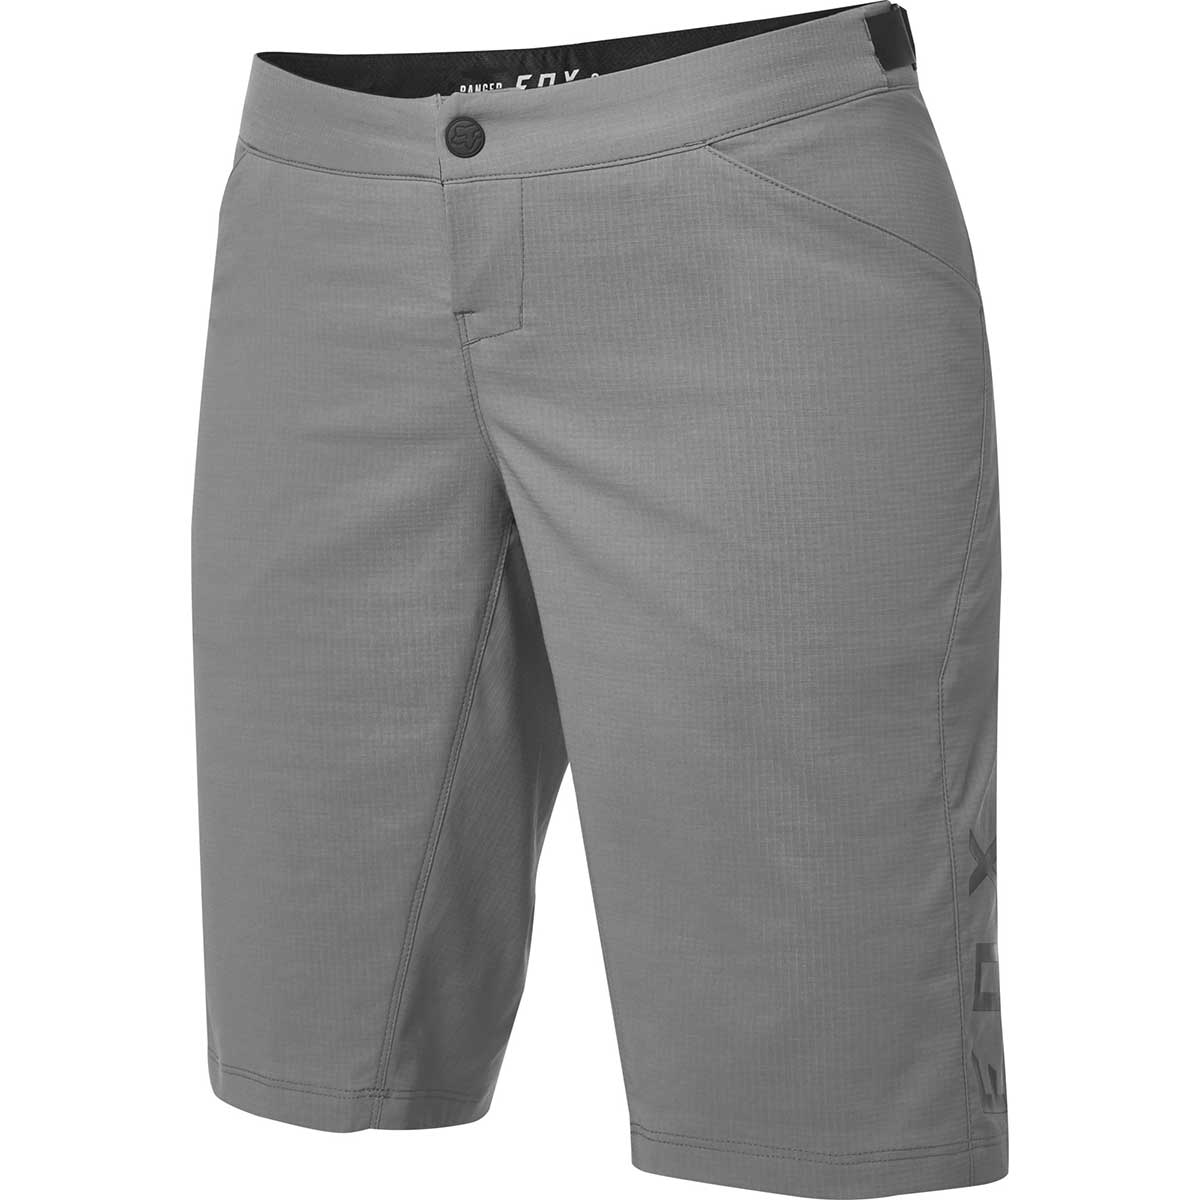 Fox women's Ranger Short in Pewter